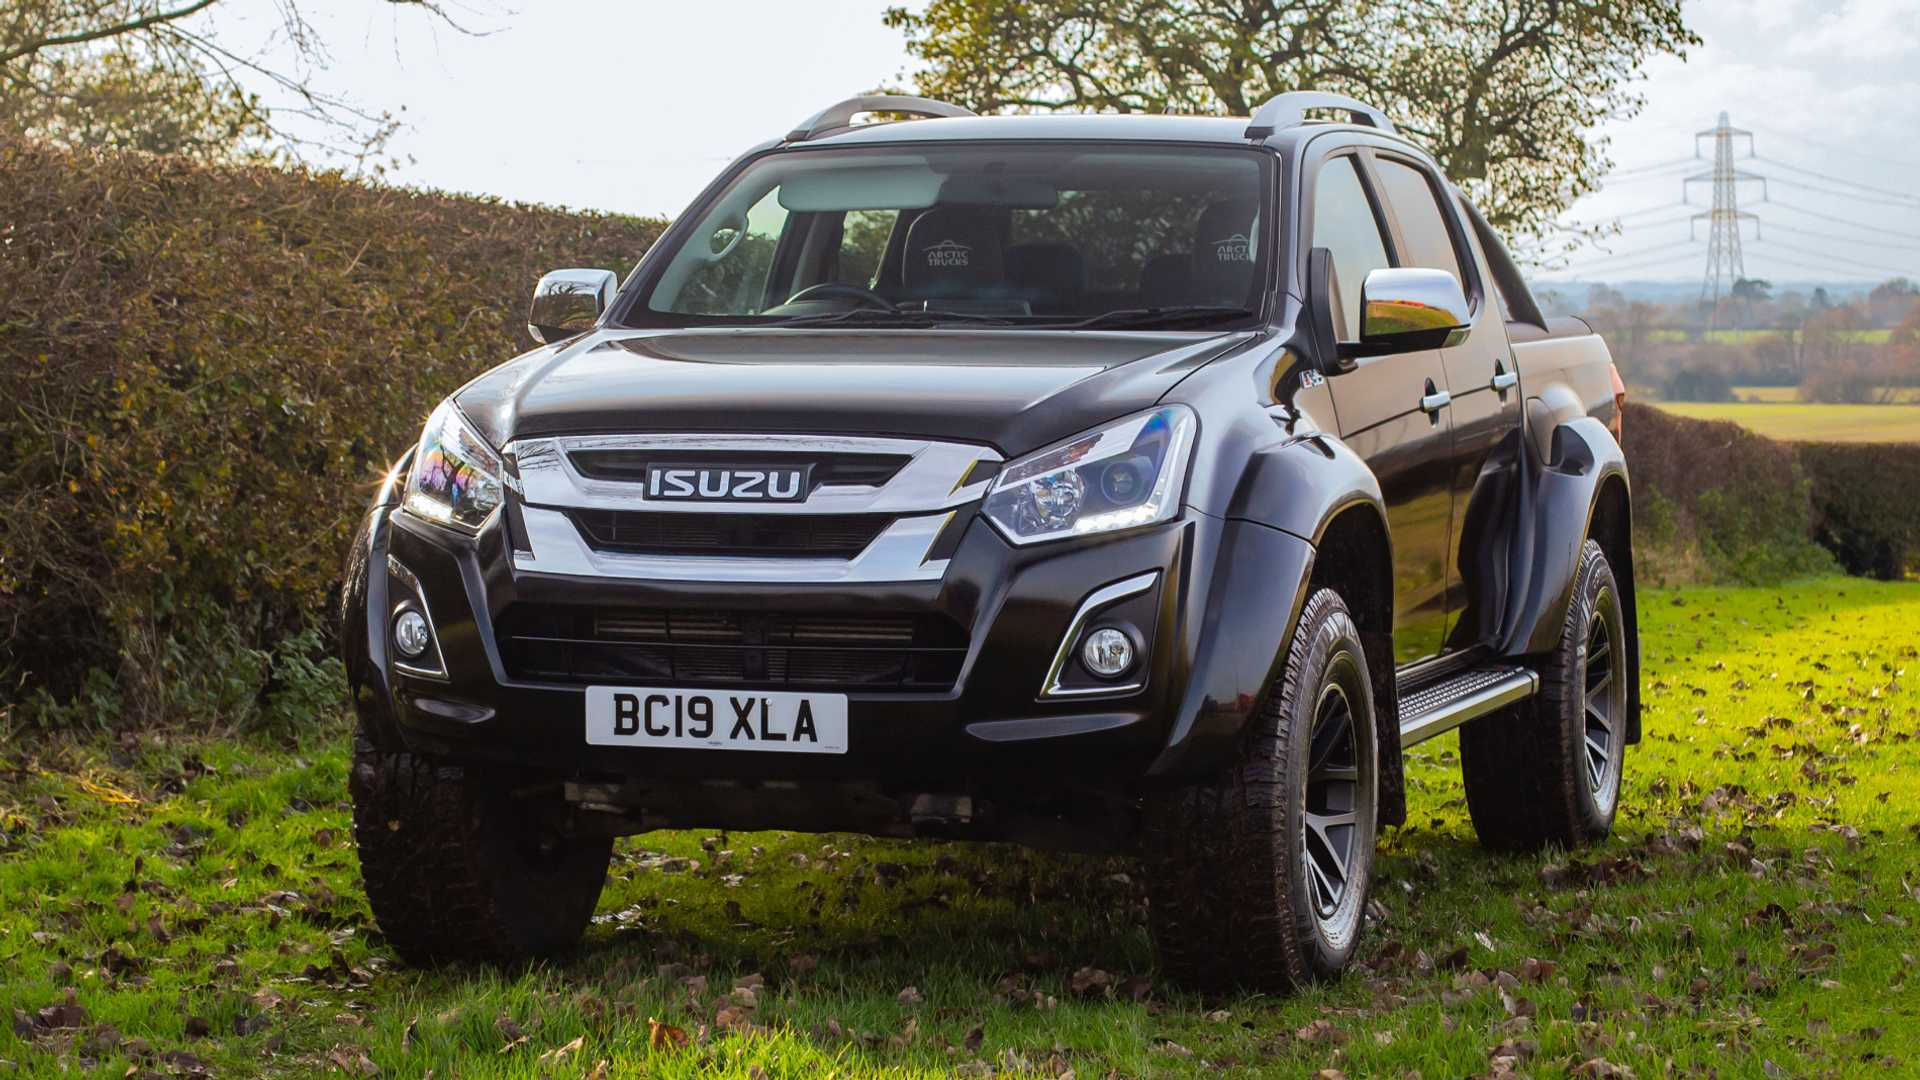 Updated Isuzu D-Max Arctic Trucks AT35 priced from £39,995 plus VAT